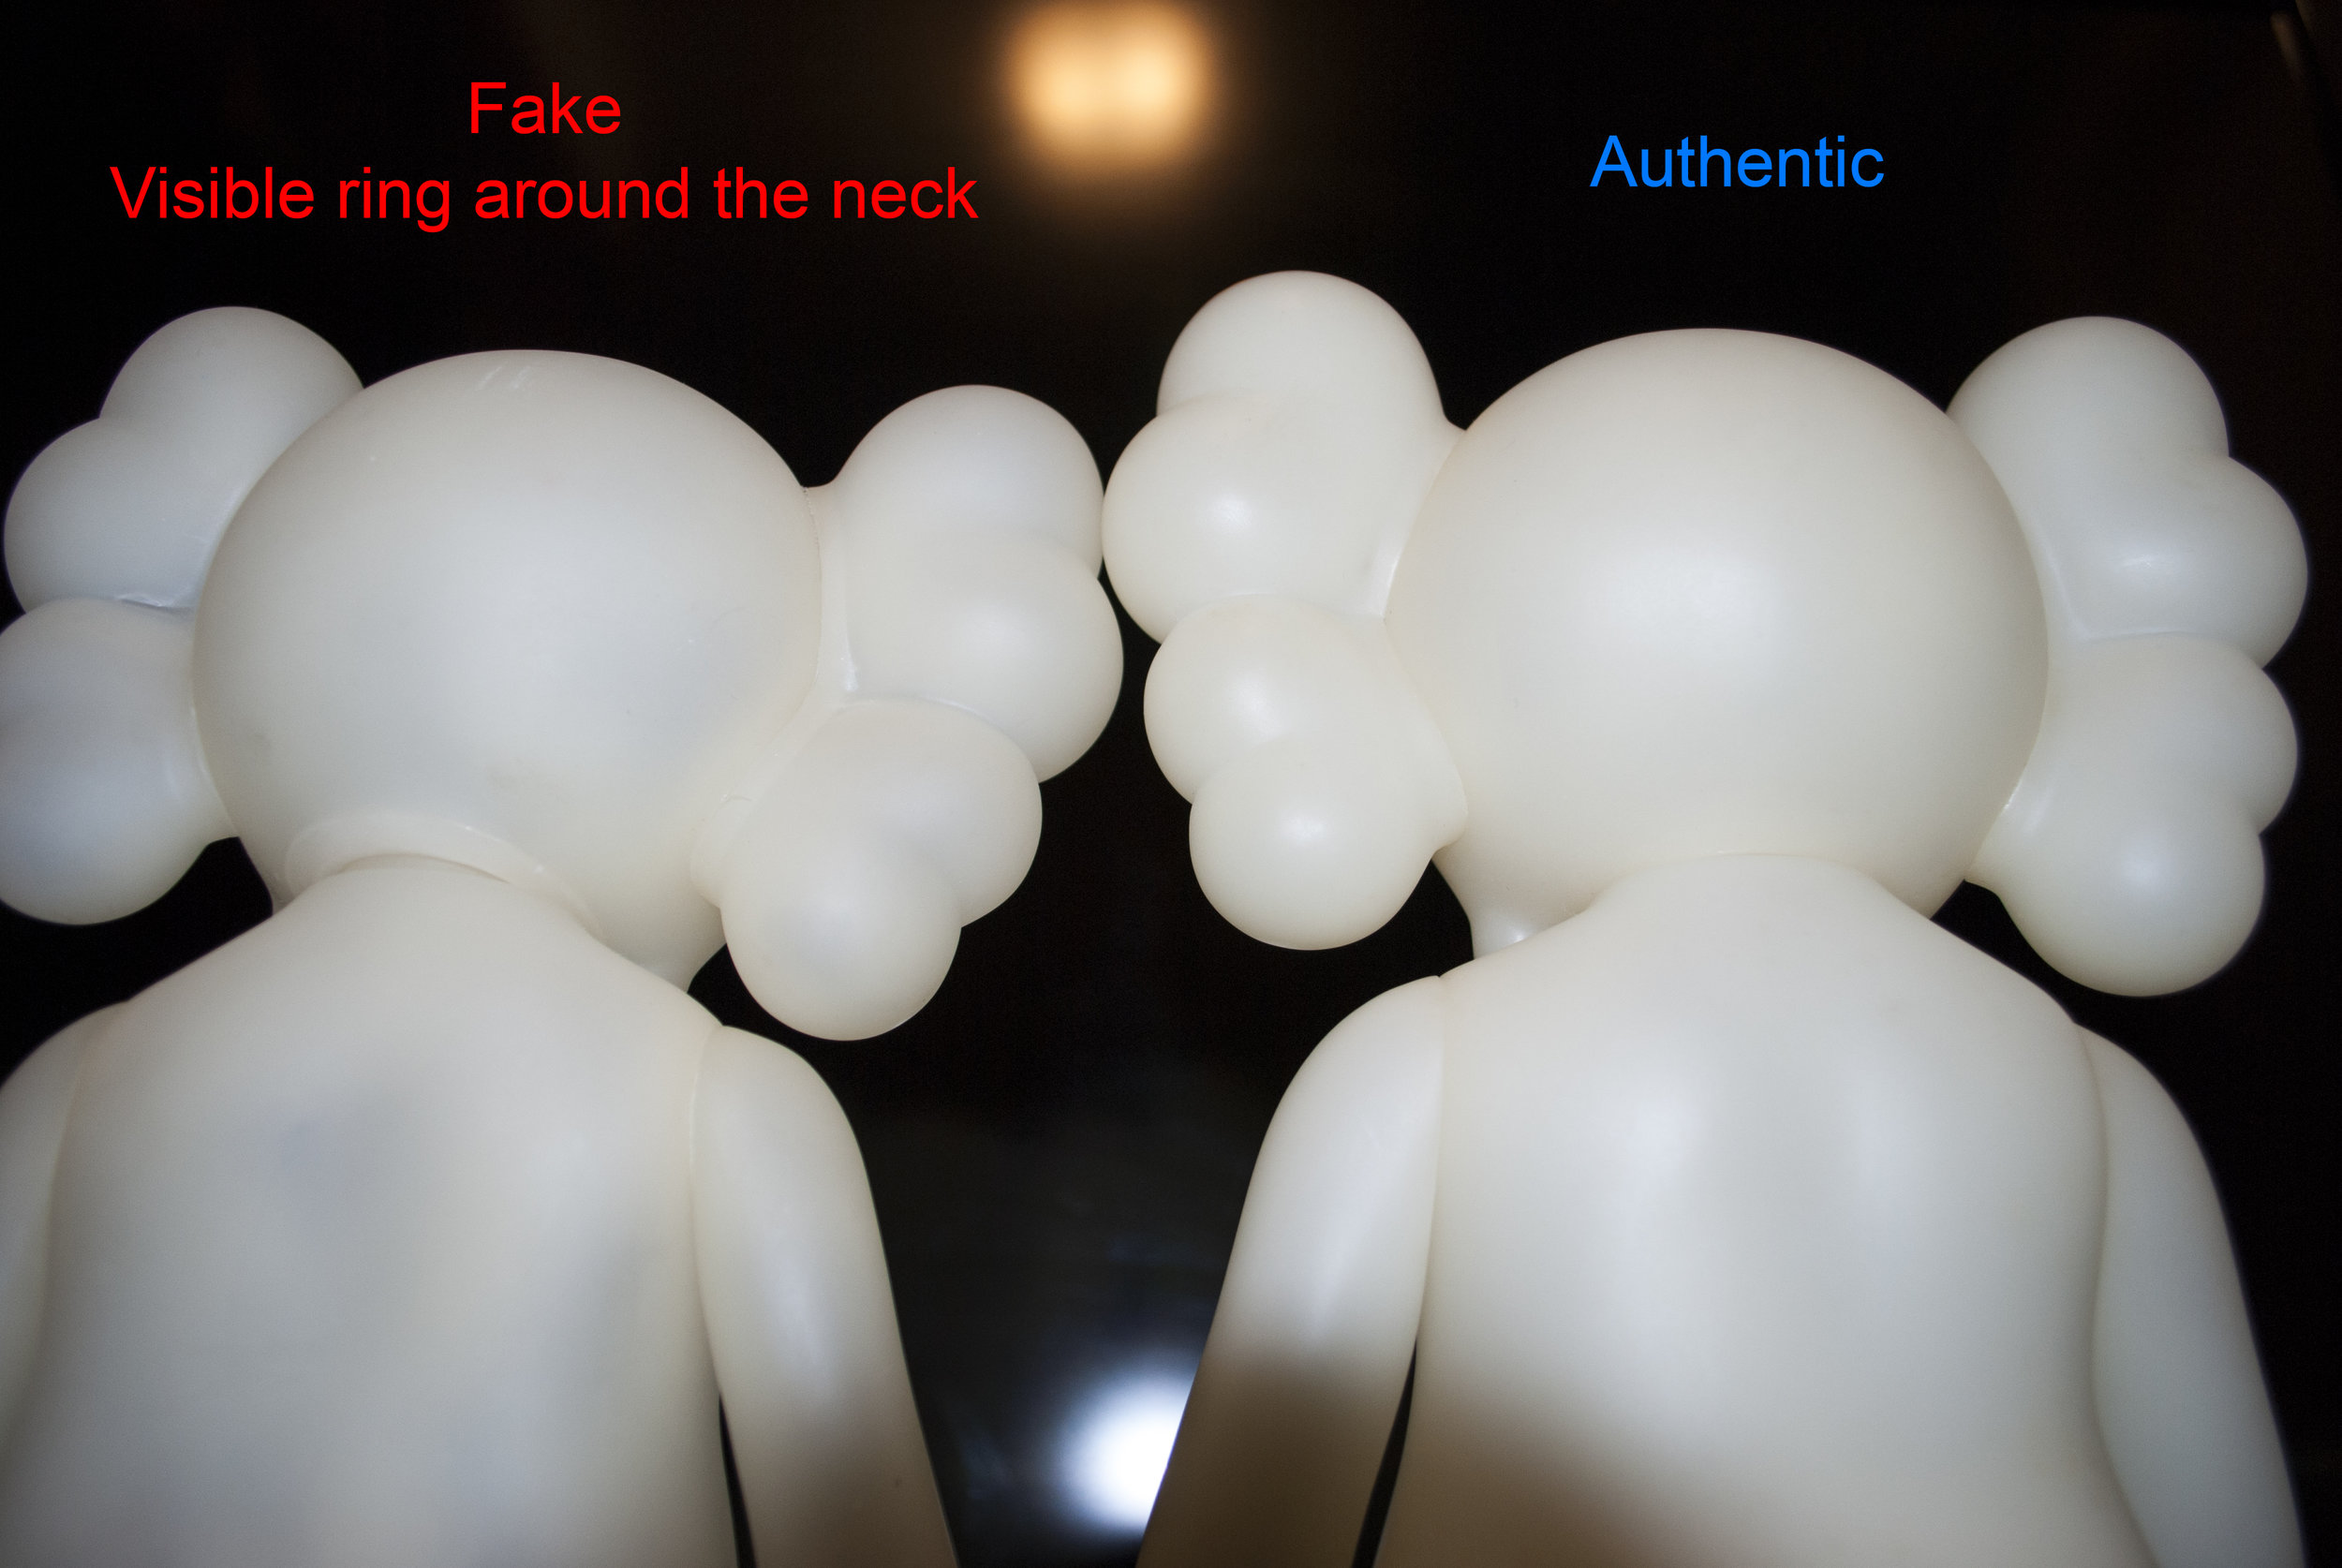 There is a clearly visible ring around the fakes neck. The authentic version is smooth